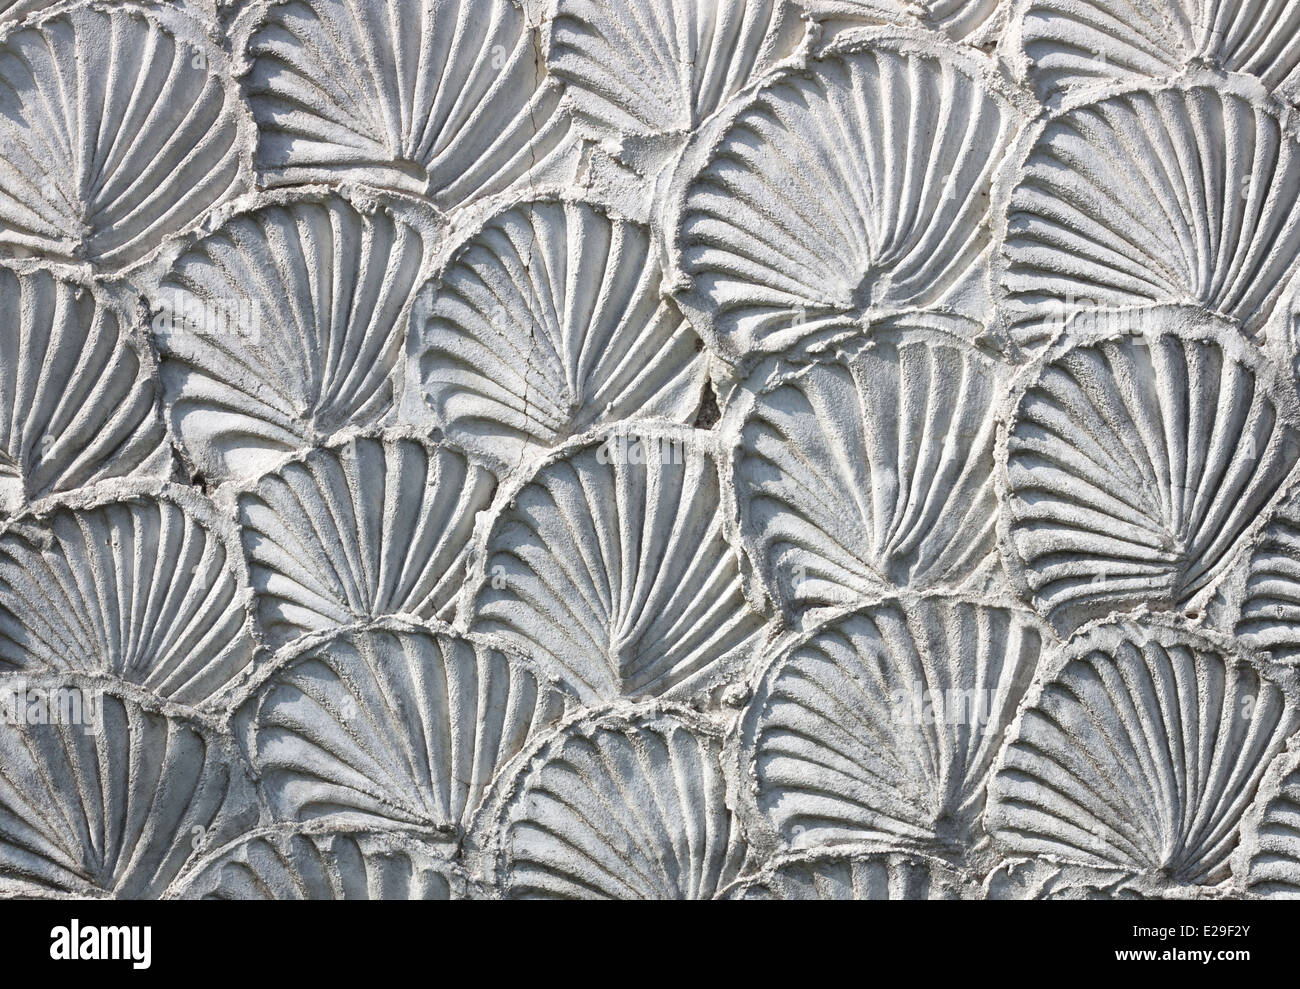 White mortar wall texture background aesthetic. - Stock Image